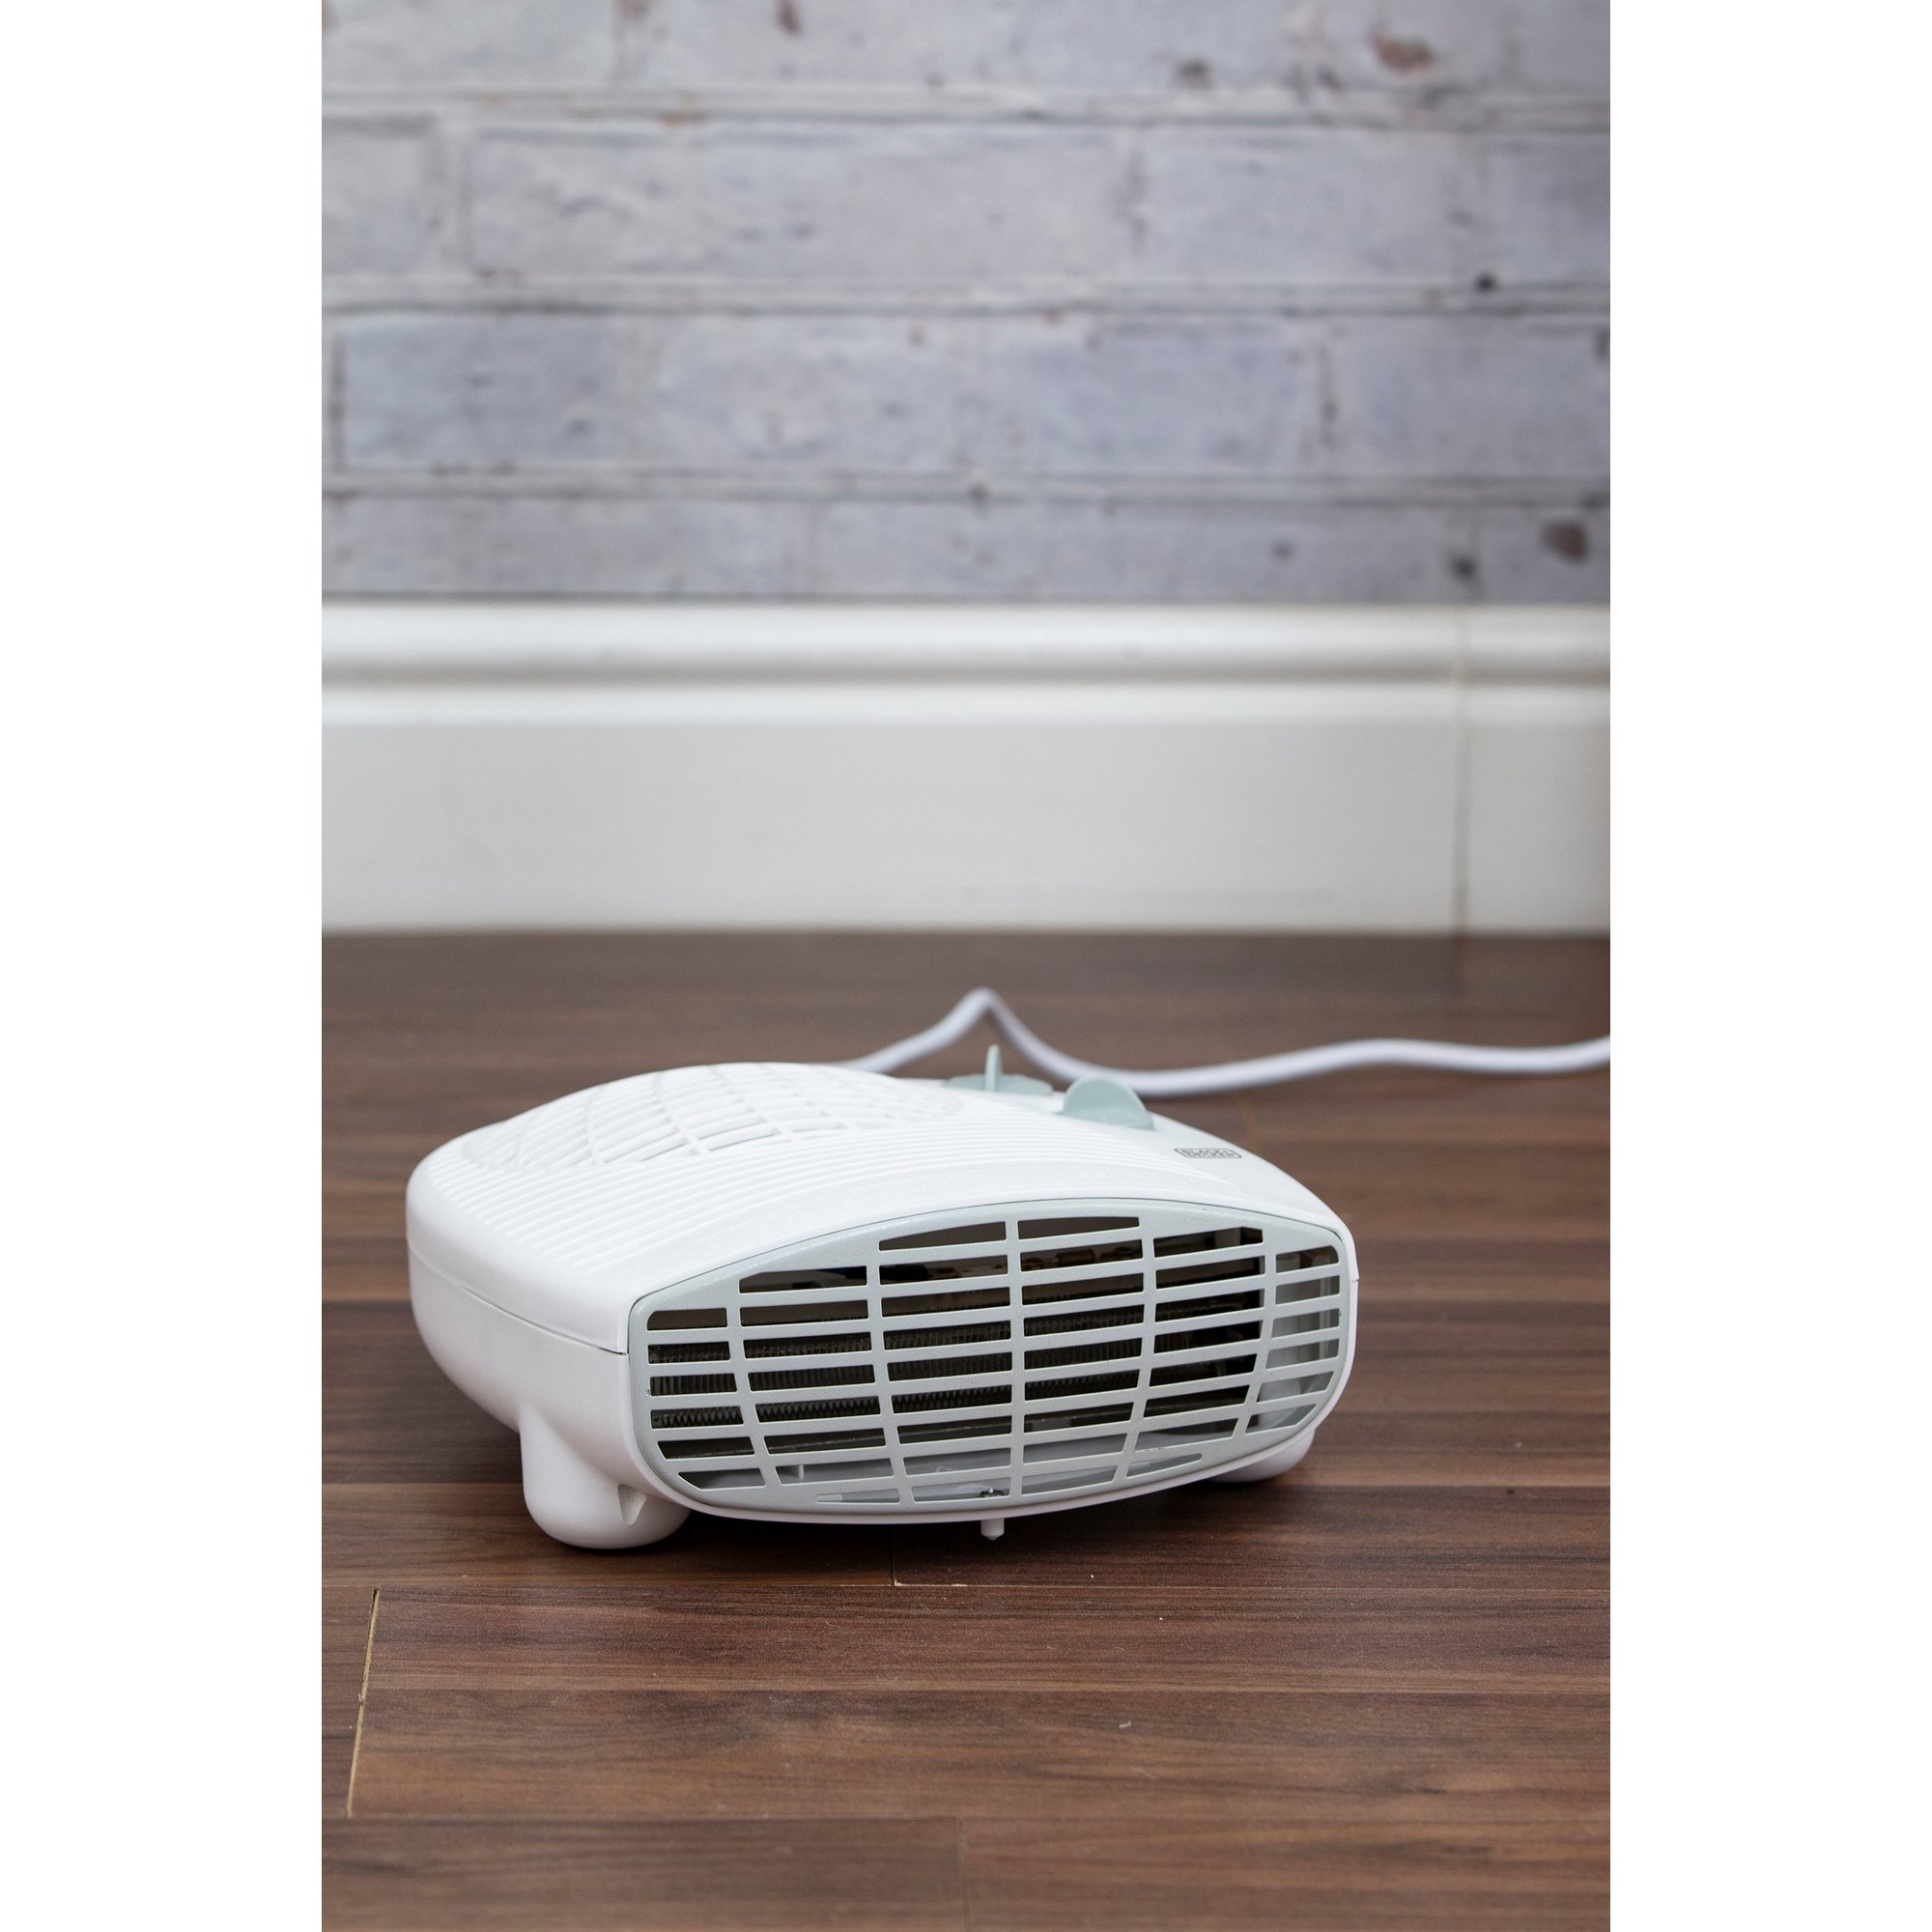 Image of Black and Decker 2000W Flat Fan Heater